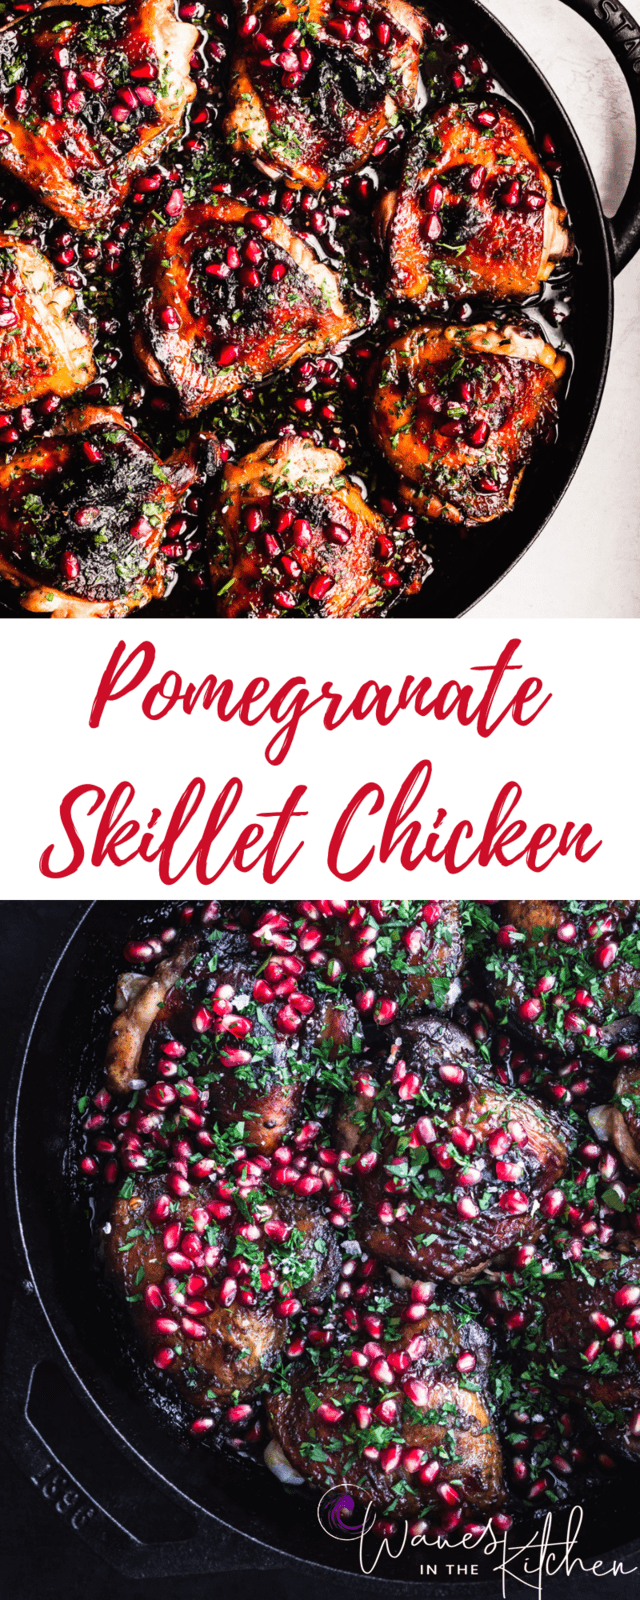 Pomegranate Skillet Chicken, out of the oven and all done, in a cast iron skillet on white background. Overhead shot with the left side cut off. On Top. | Pomegranate Skillet Chicken, out of the oven and all done, in a cast iron skillet on a black background. Overhead shot with the right side cut off. On the bottom.